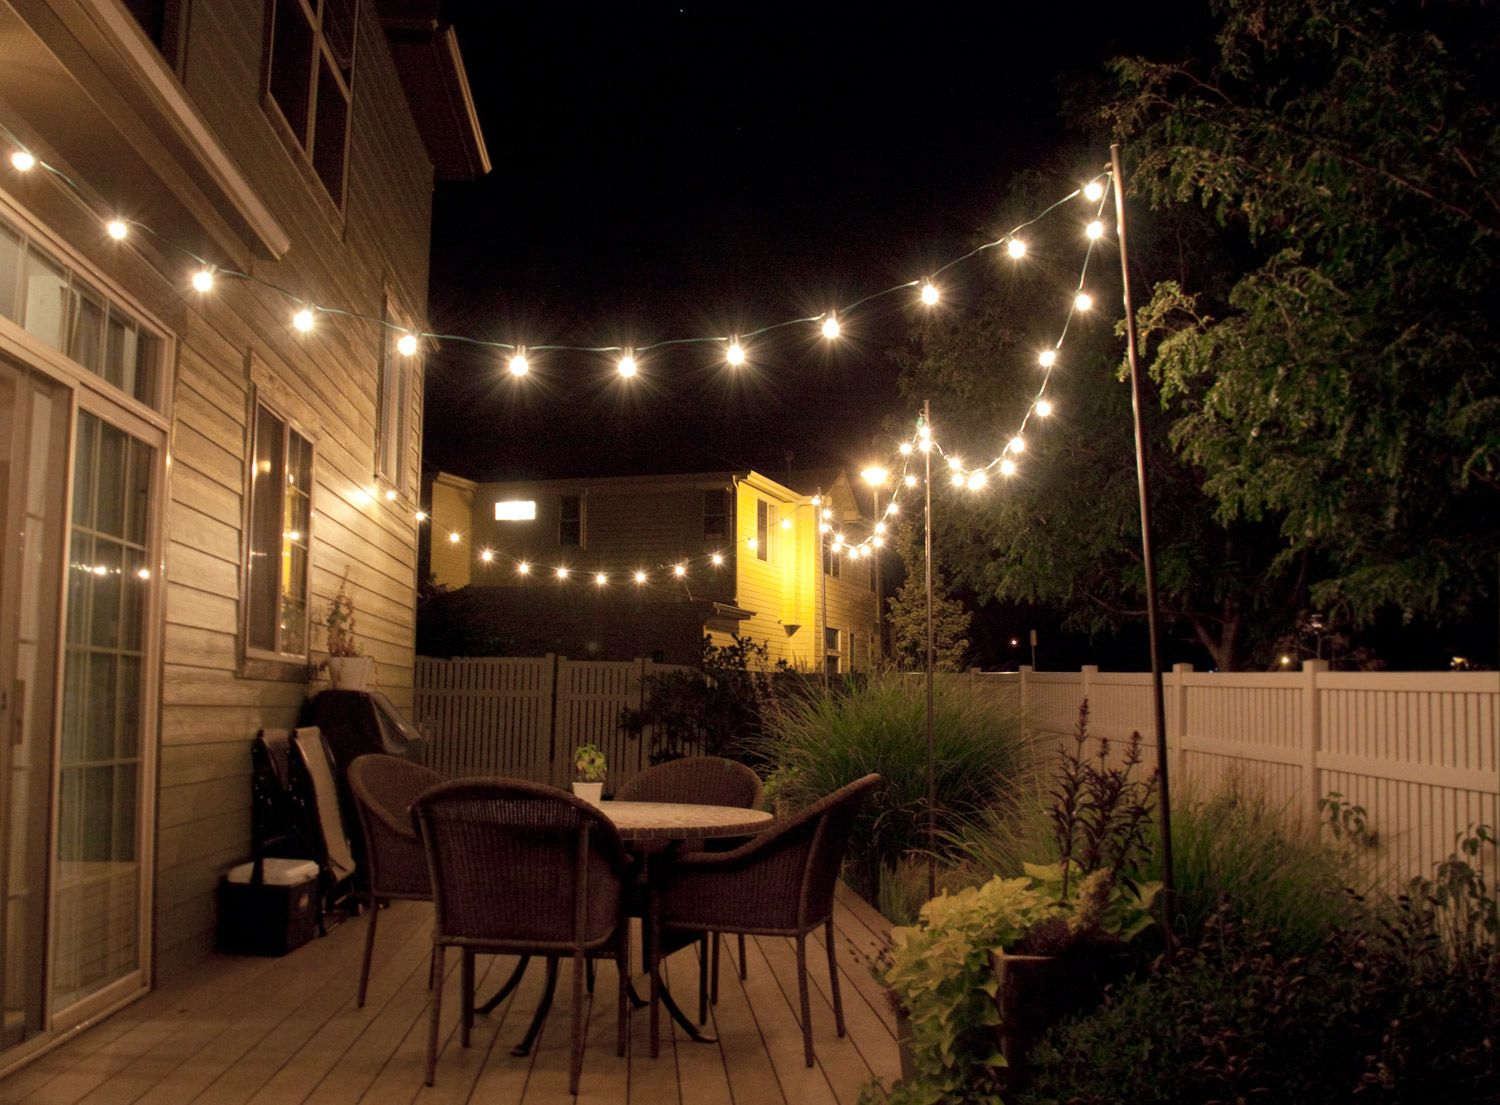 Garden String Lights Beauteous How To Make Inexpensive Poles To Hang String Lights On  Café Style